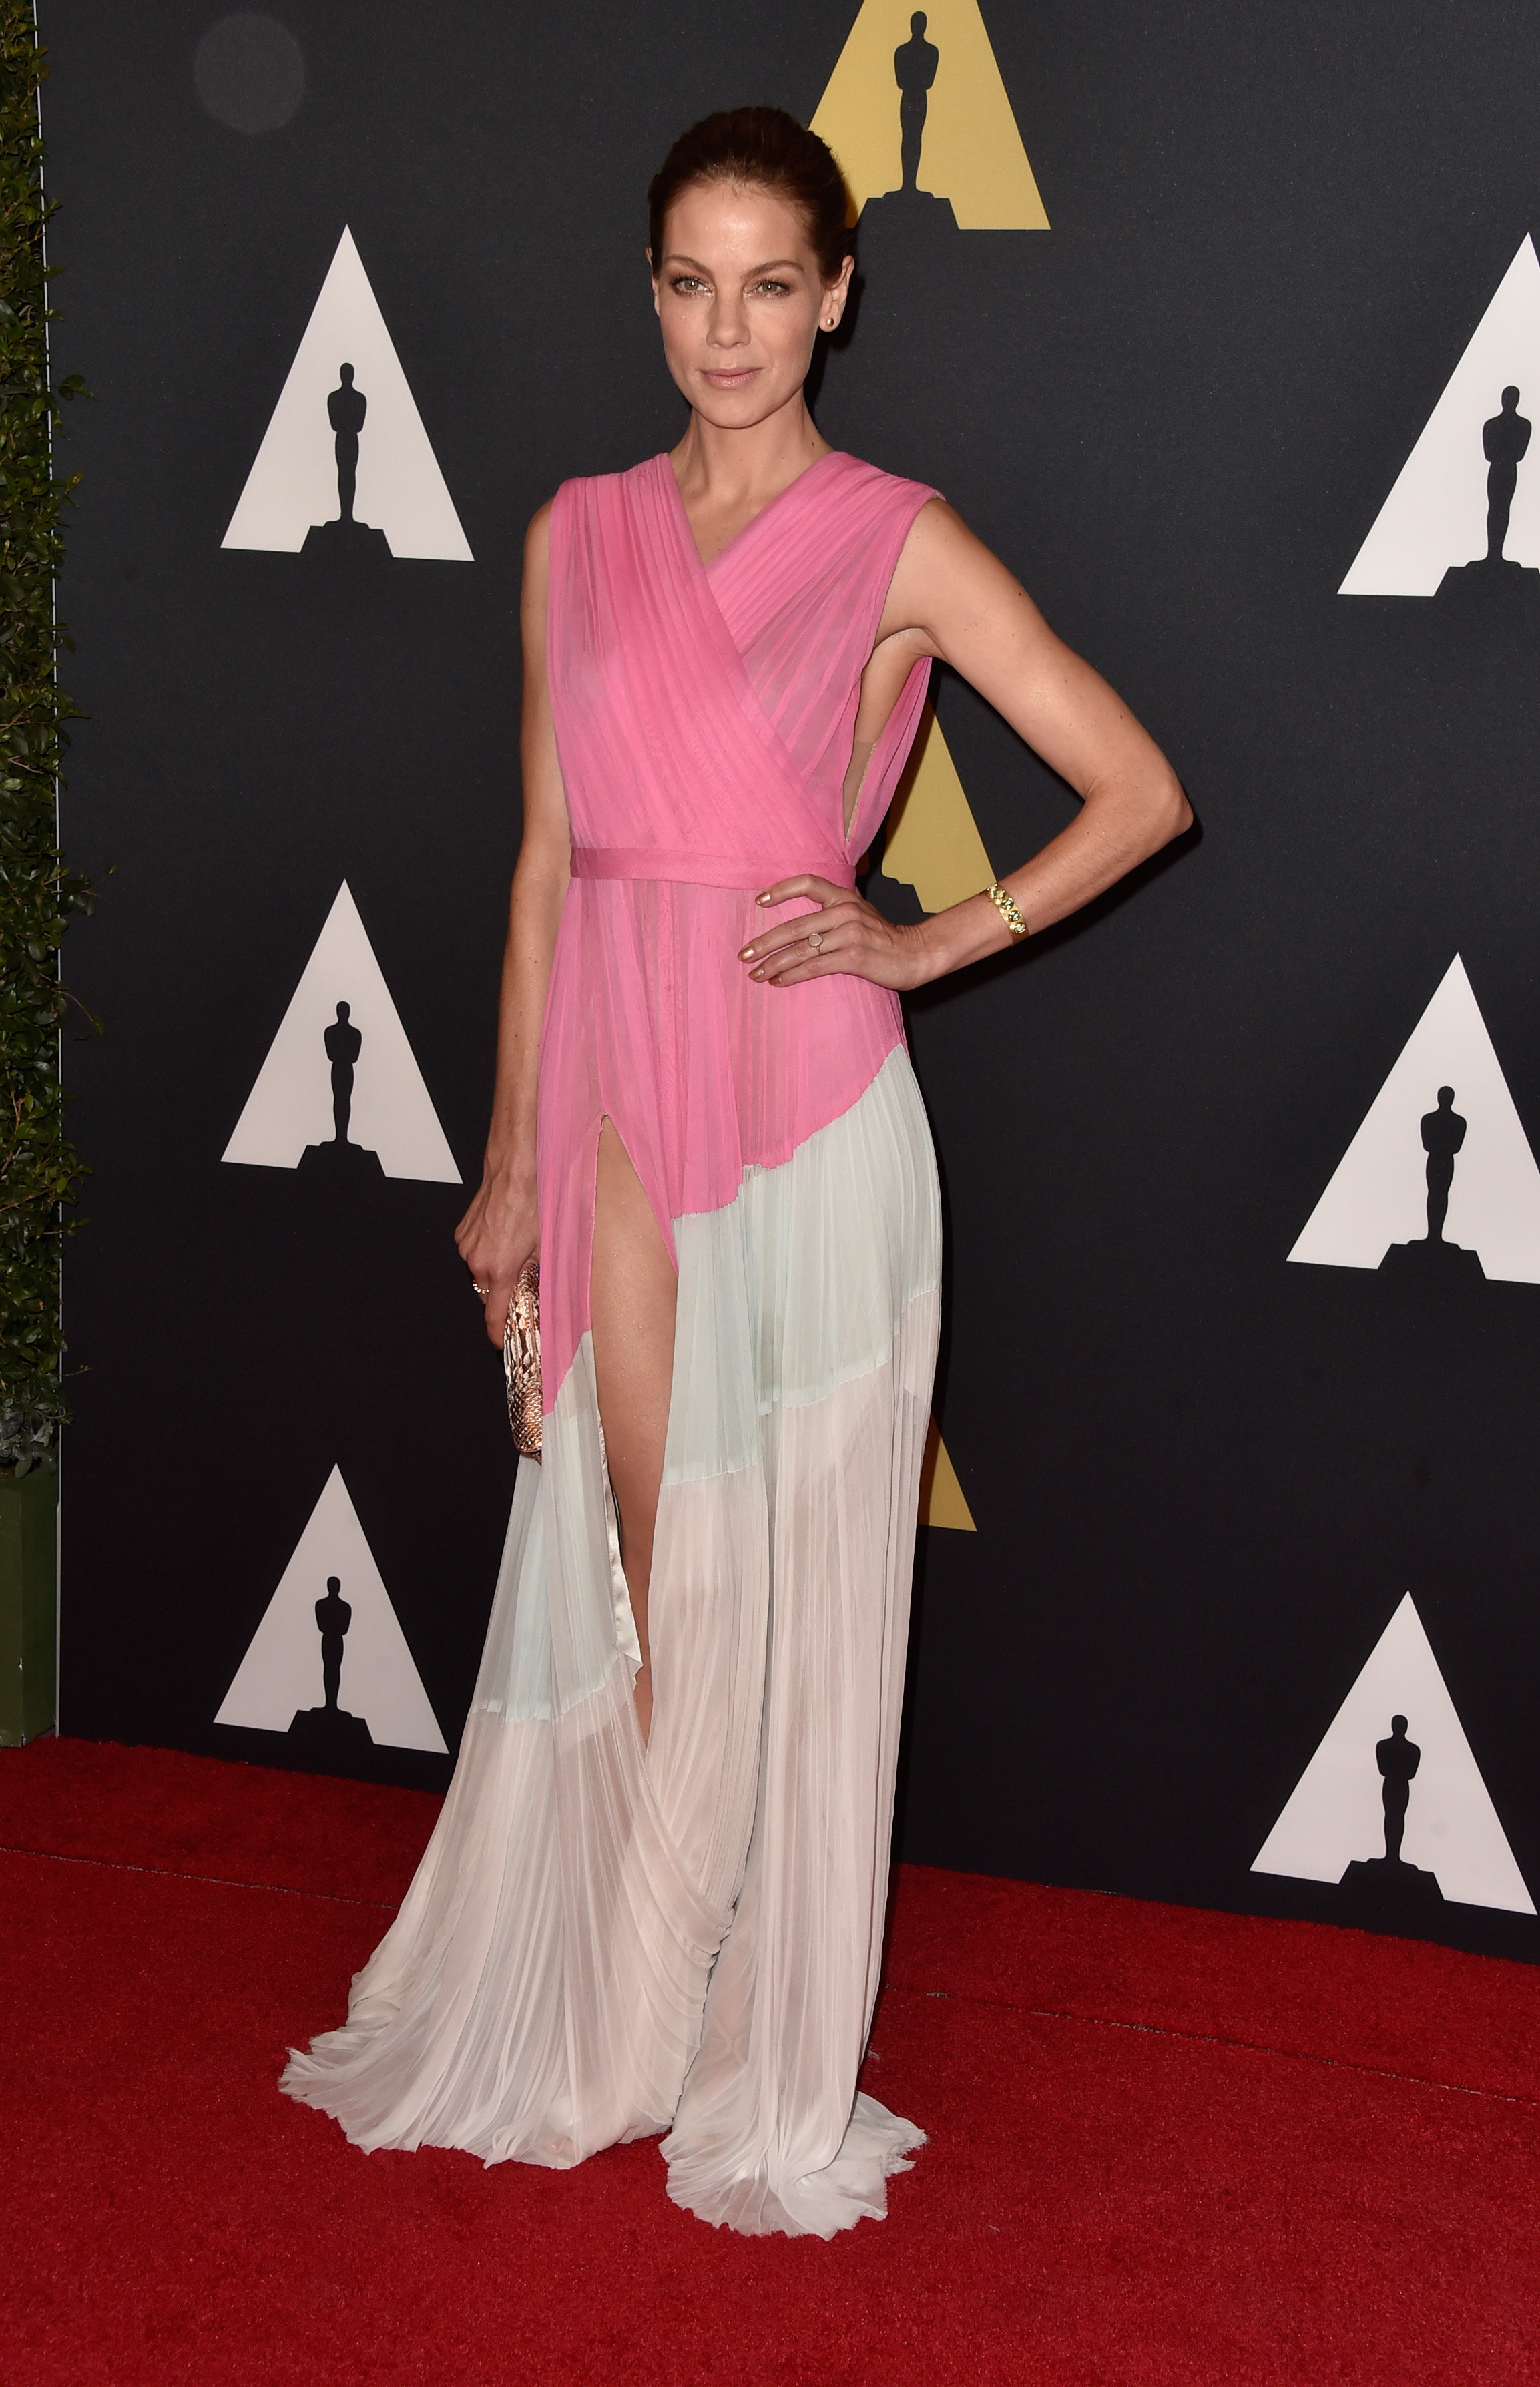 michelle-monaghan-j-mendel-academy-motion-picture-arts-sciences-governors-award